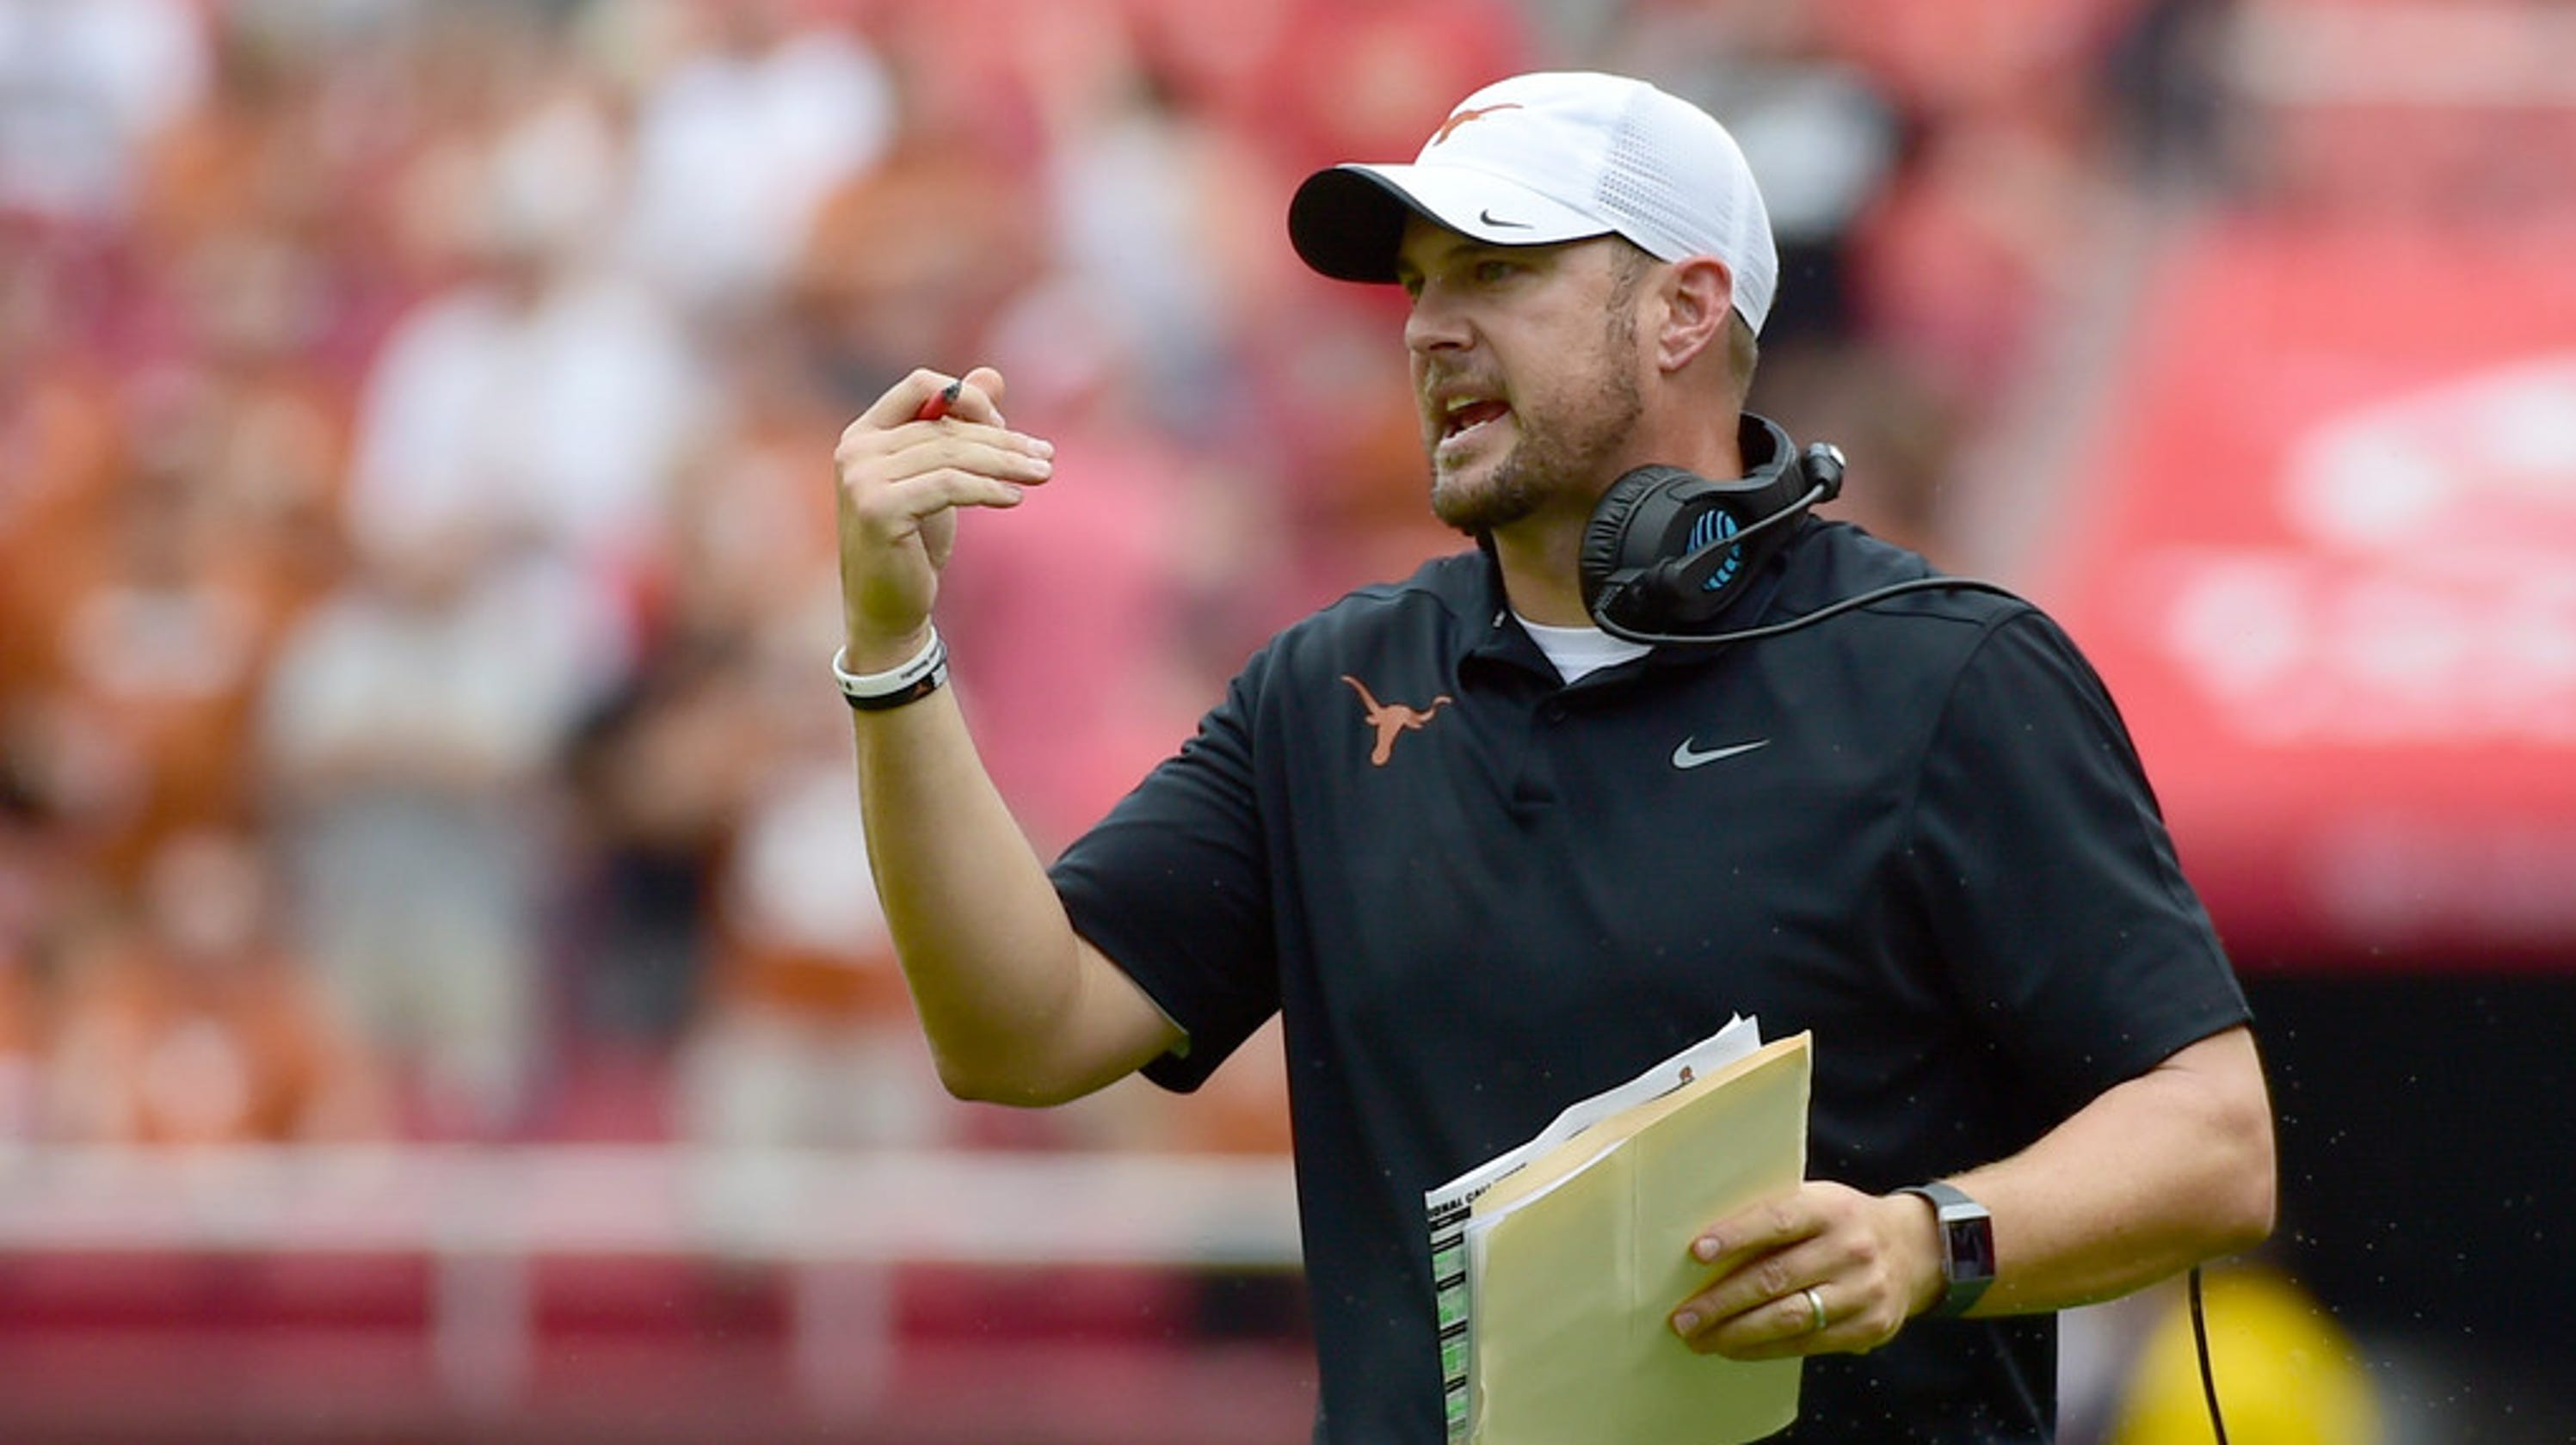 Texas losing to Maryland for second time should be surprise